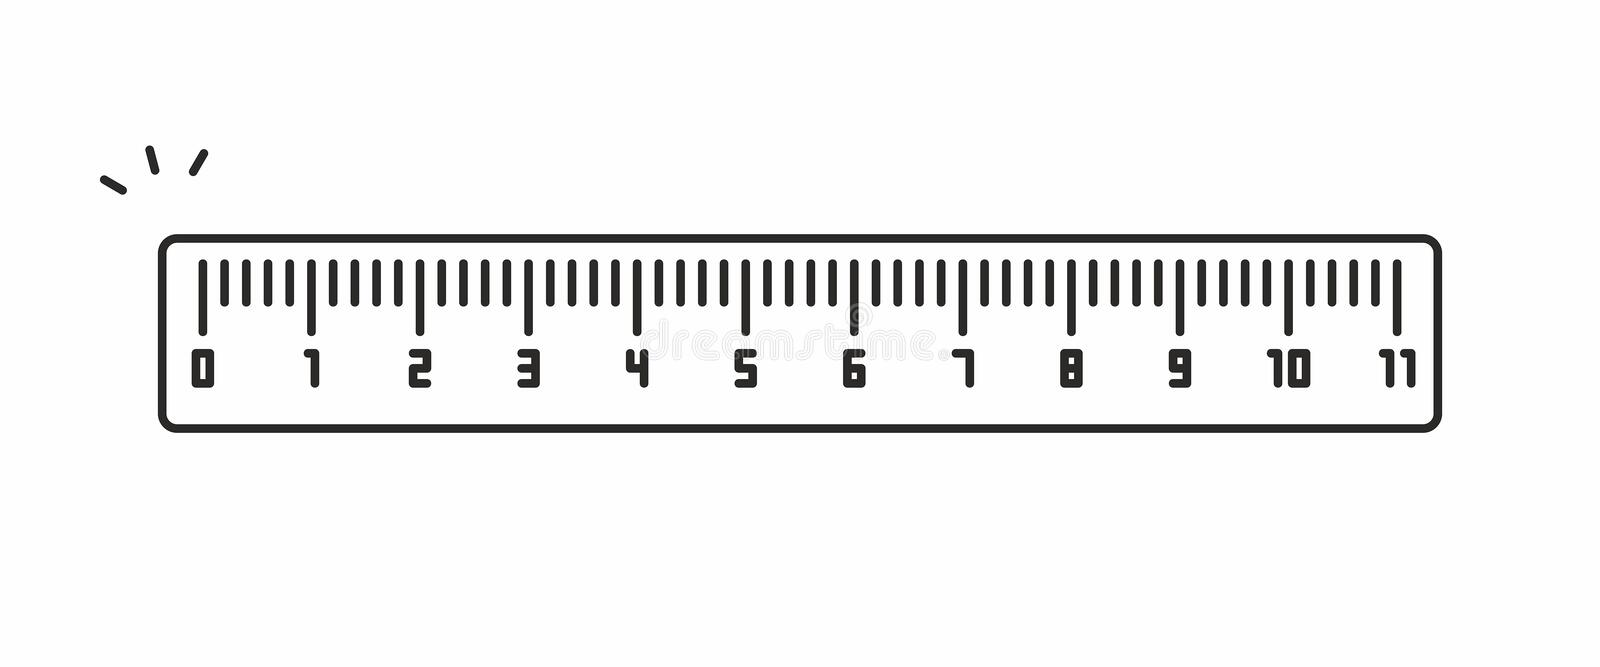 Ruler vector icon royalty free illustration